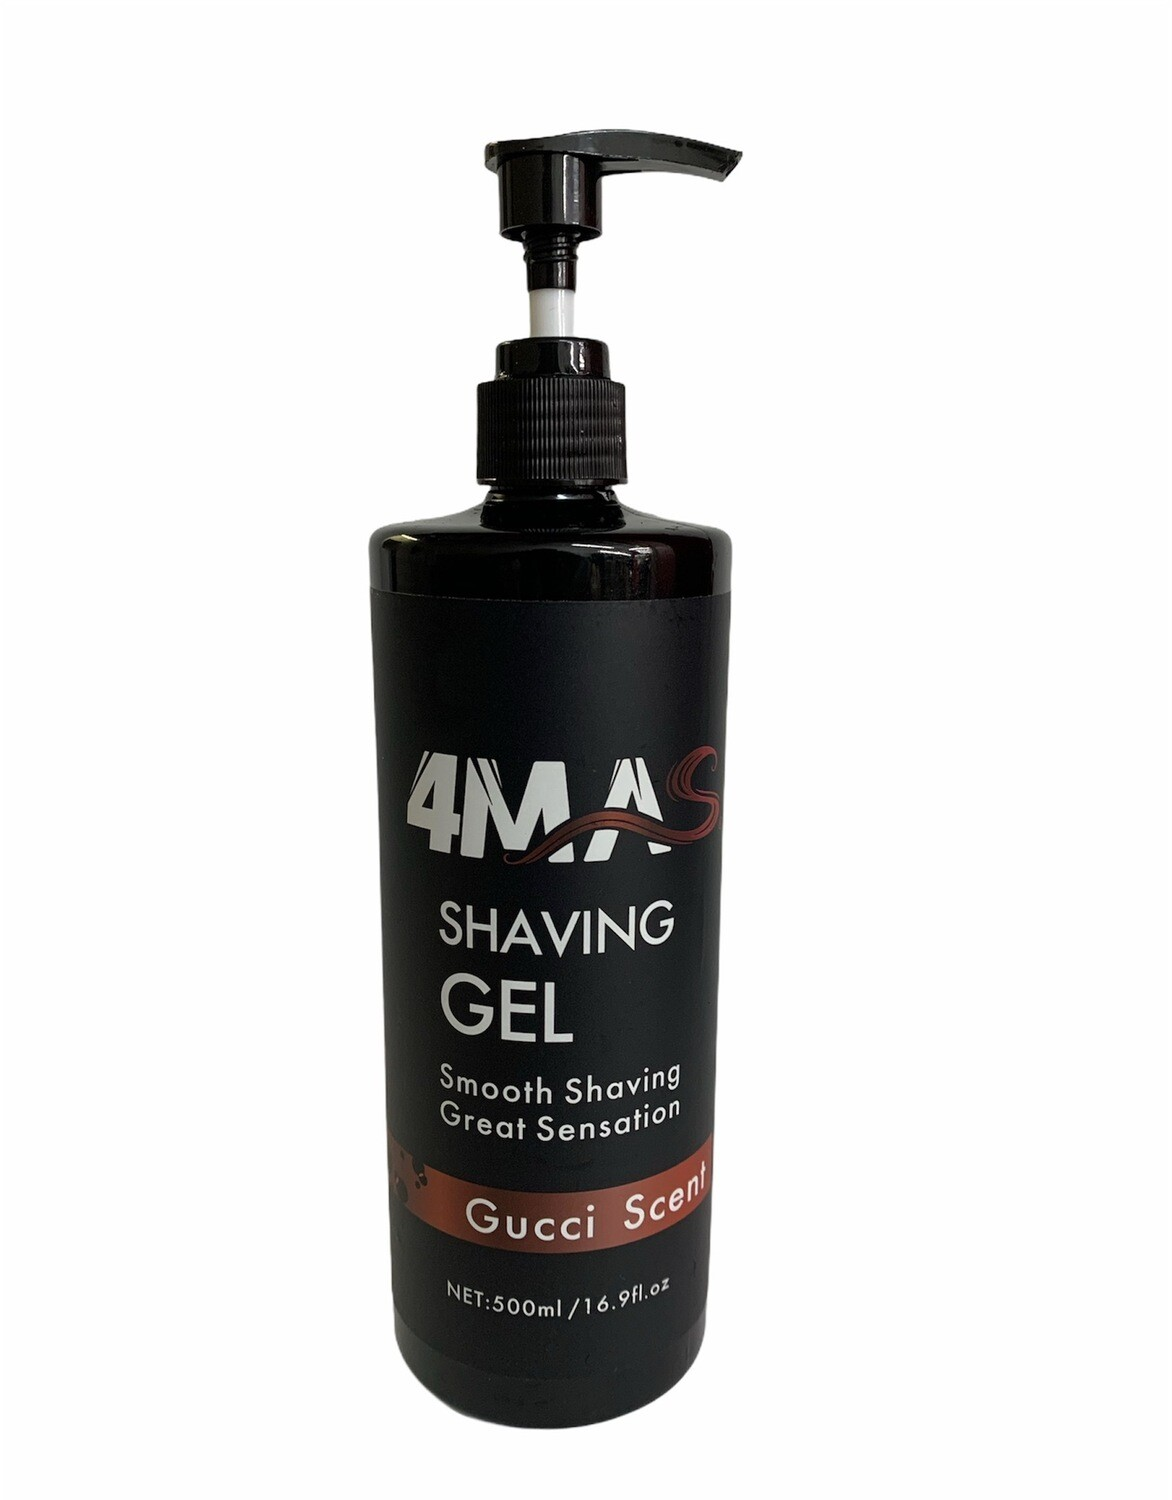 4MAS Shaving Gel (Gucci Scent)